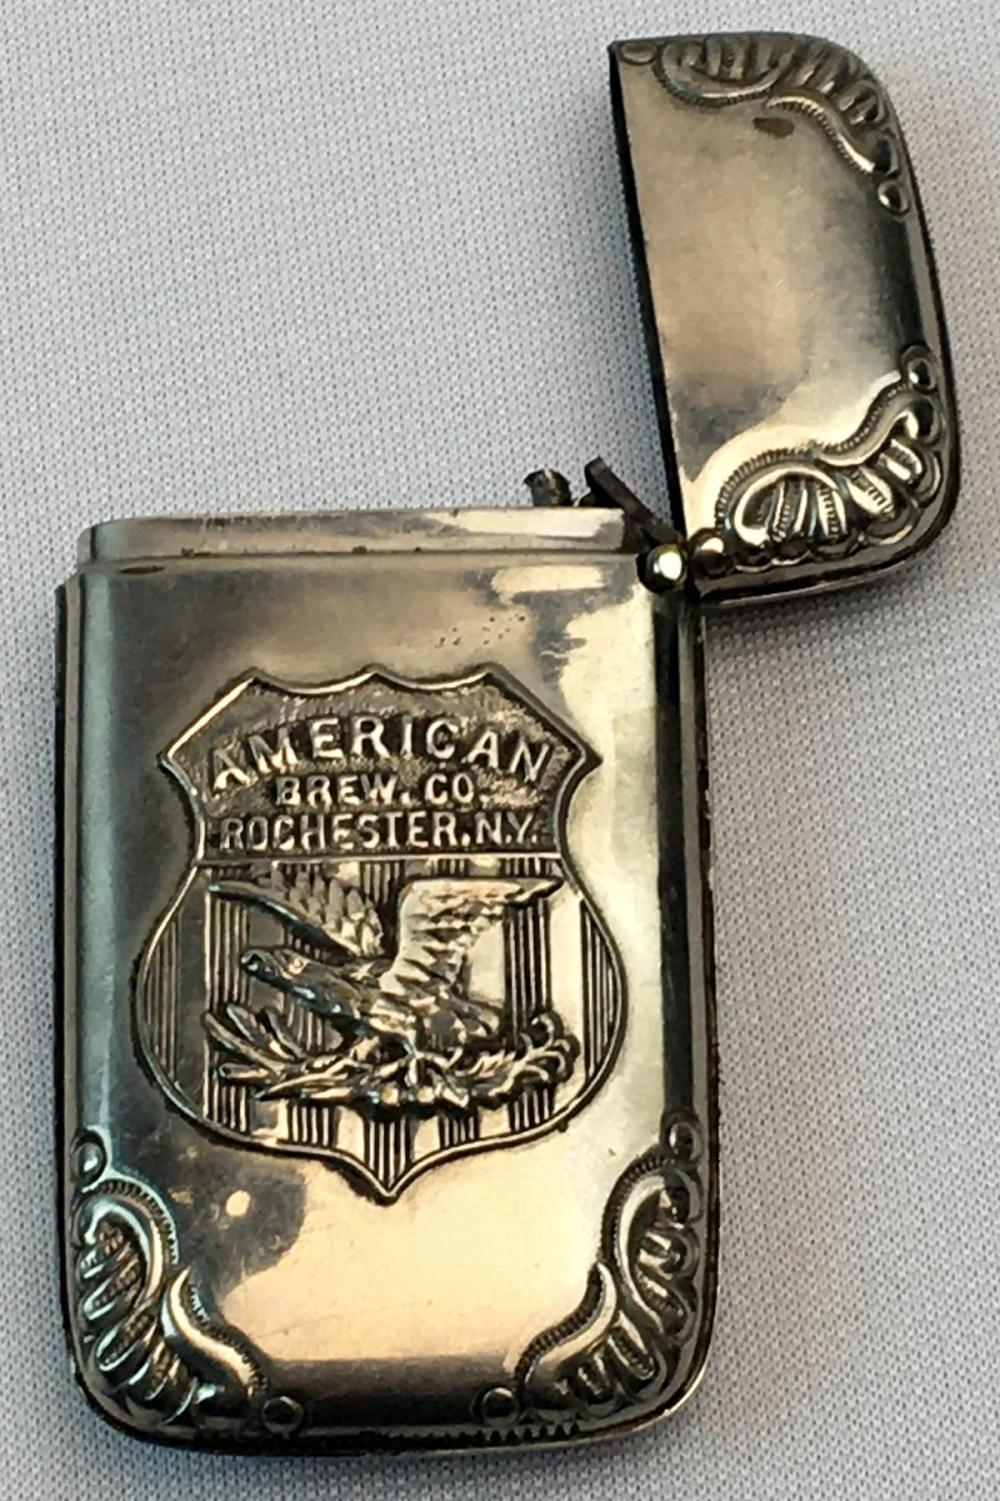 Antique c. 1920 American Brewing Co. Rochester, NY Silver Plated Advertising Match Safe